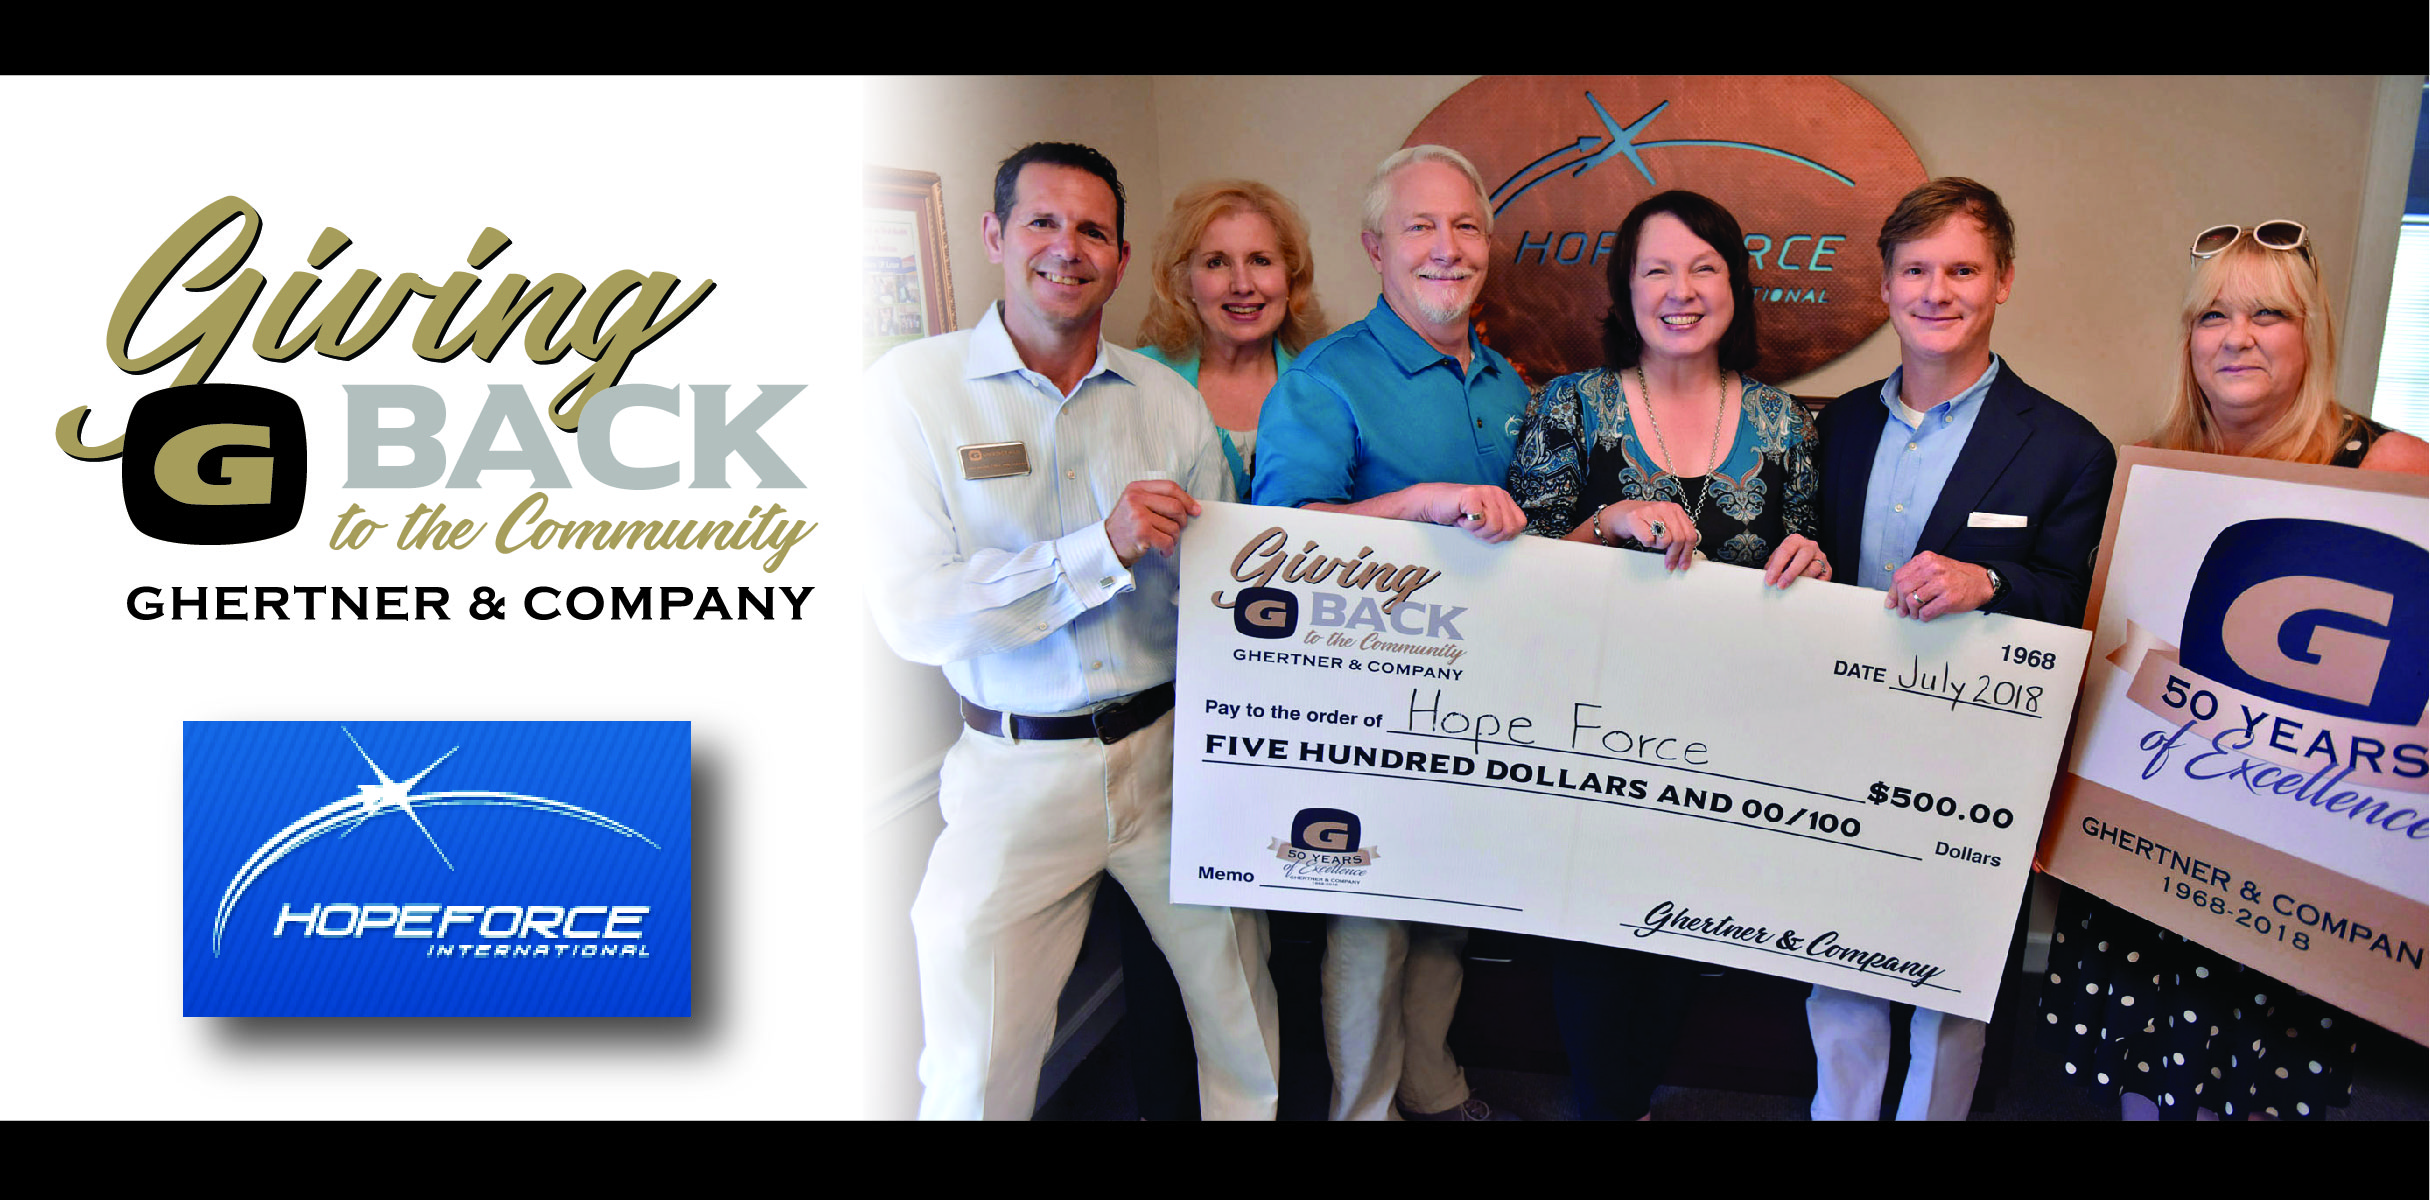 Hope Force International founders Jack and Cherie Minton receive the donation from Scott Ghertner, Co-President of Ghertner & Company.  Also present are Ghertner & Company associates John Knouff, Elecia Beard and Jaye Kloss.